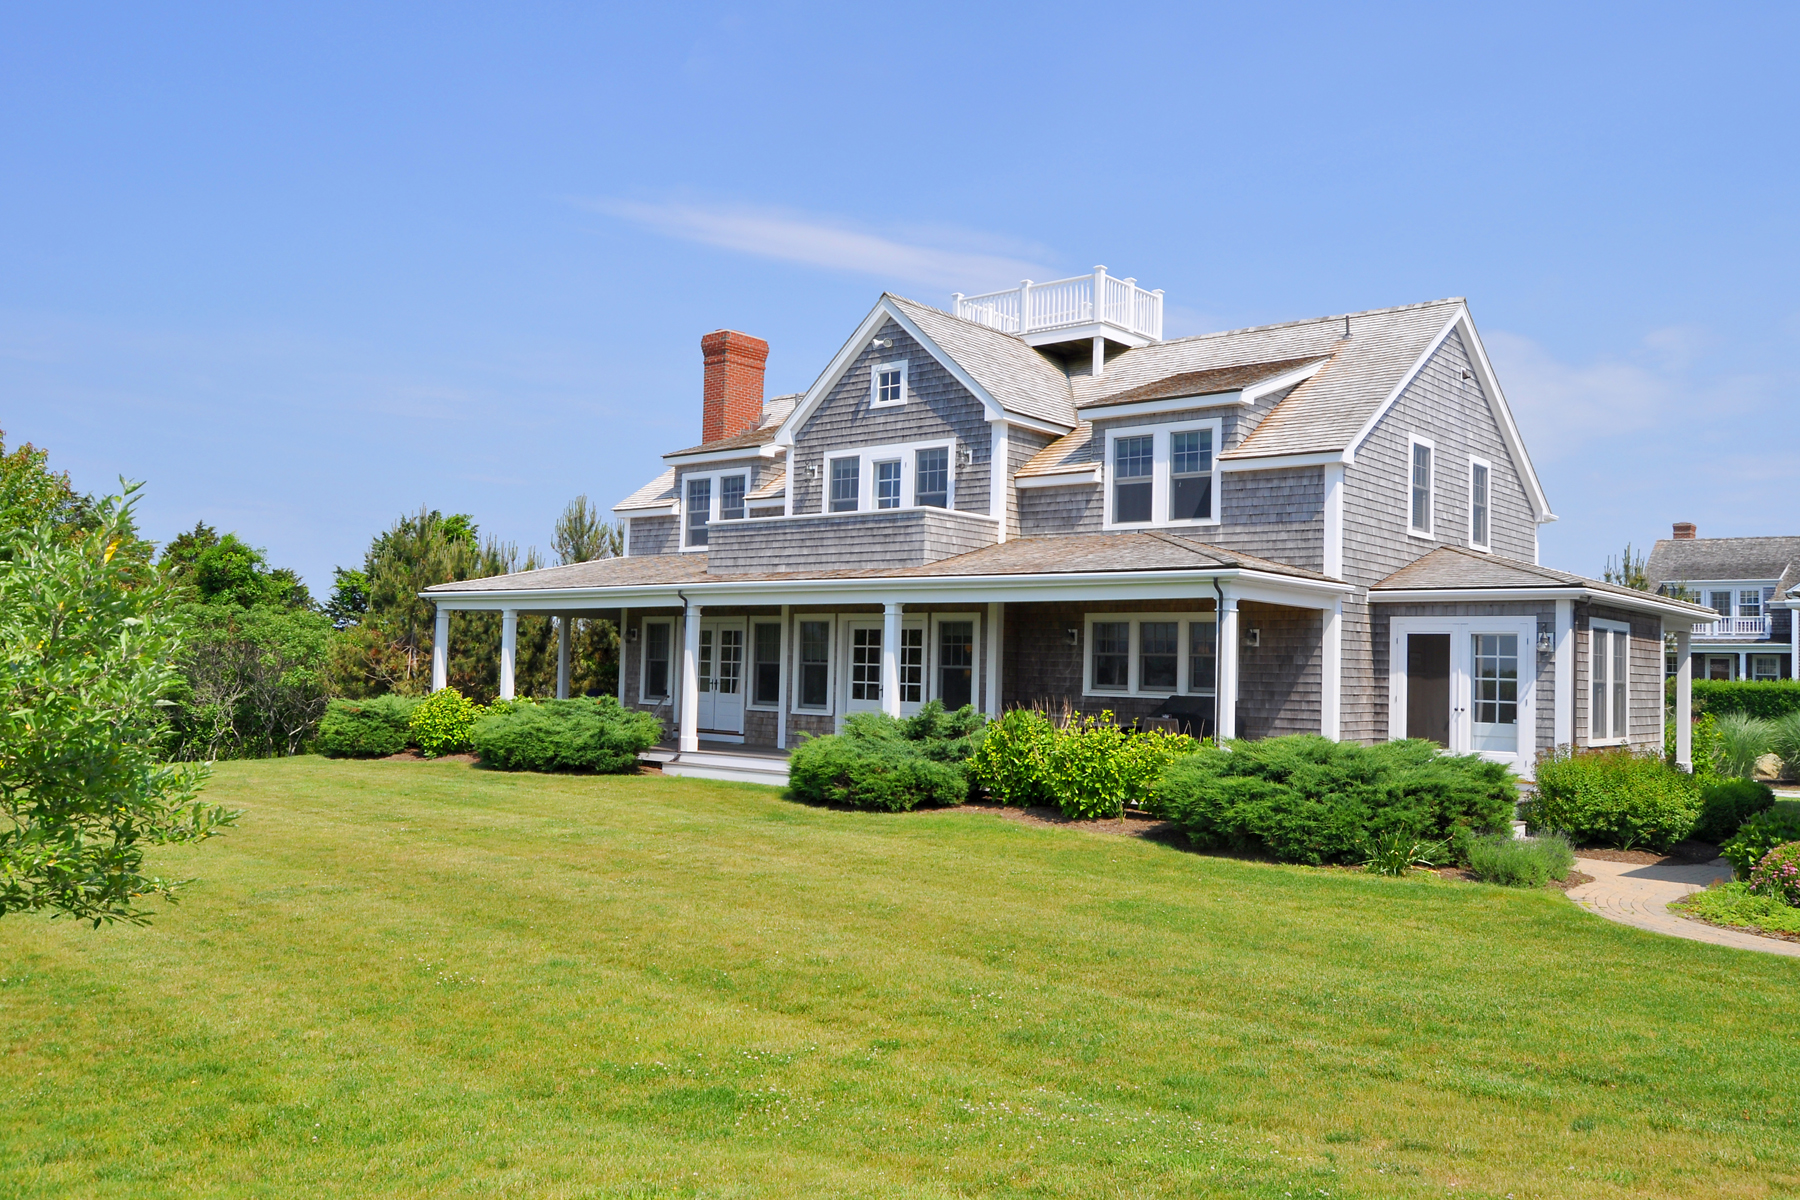 Single Family Home for Sale at Atlantic Ocean Views and Privacy 16 Plainfield Road Siasconset, Massachusetts 02564 United States